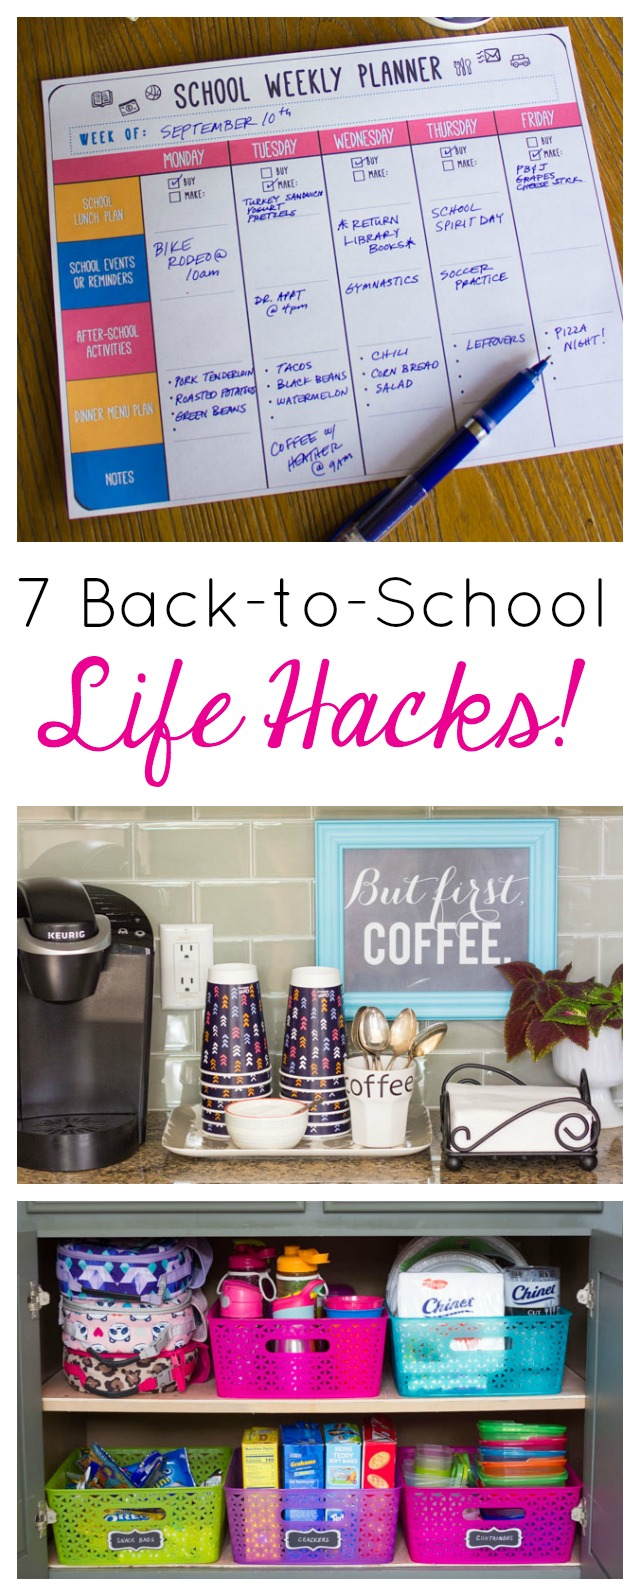 These 7 back-to-school life hacks will streamline your morning routine! #backtoschool #lifehacks #backtoschoolhacks